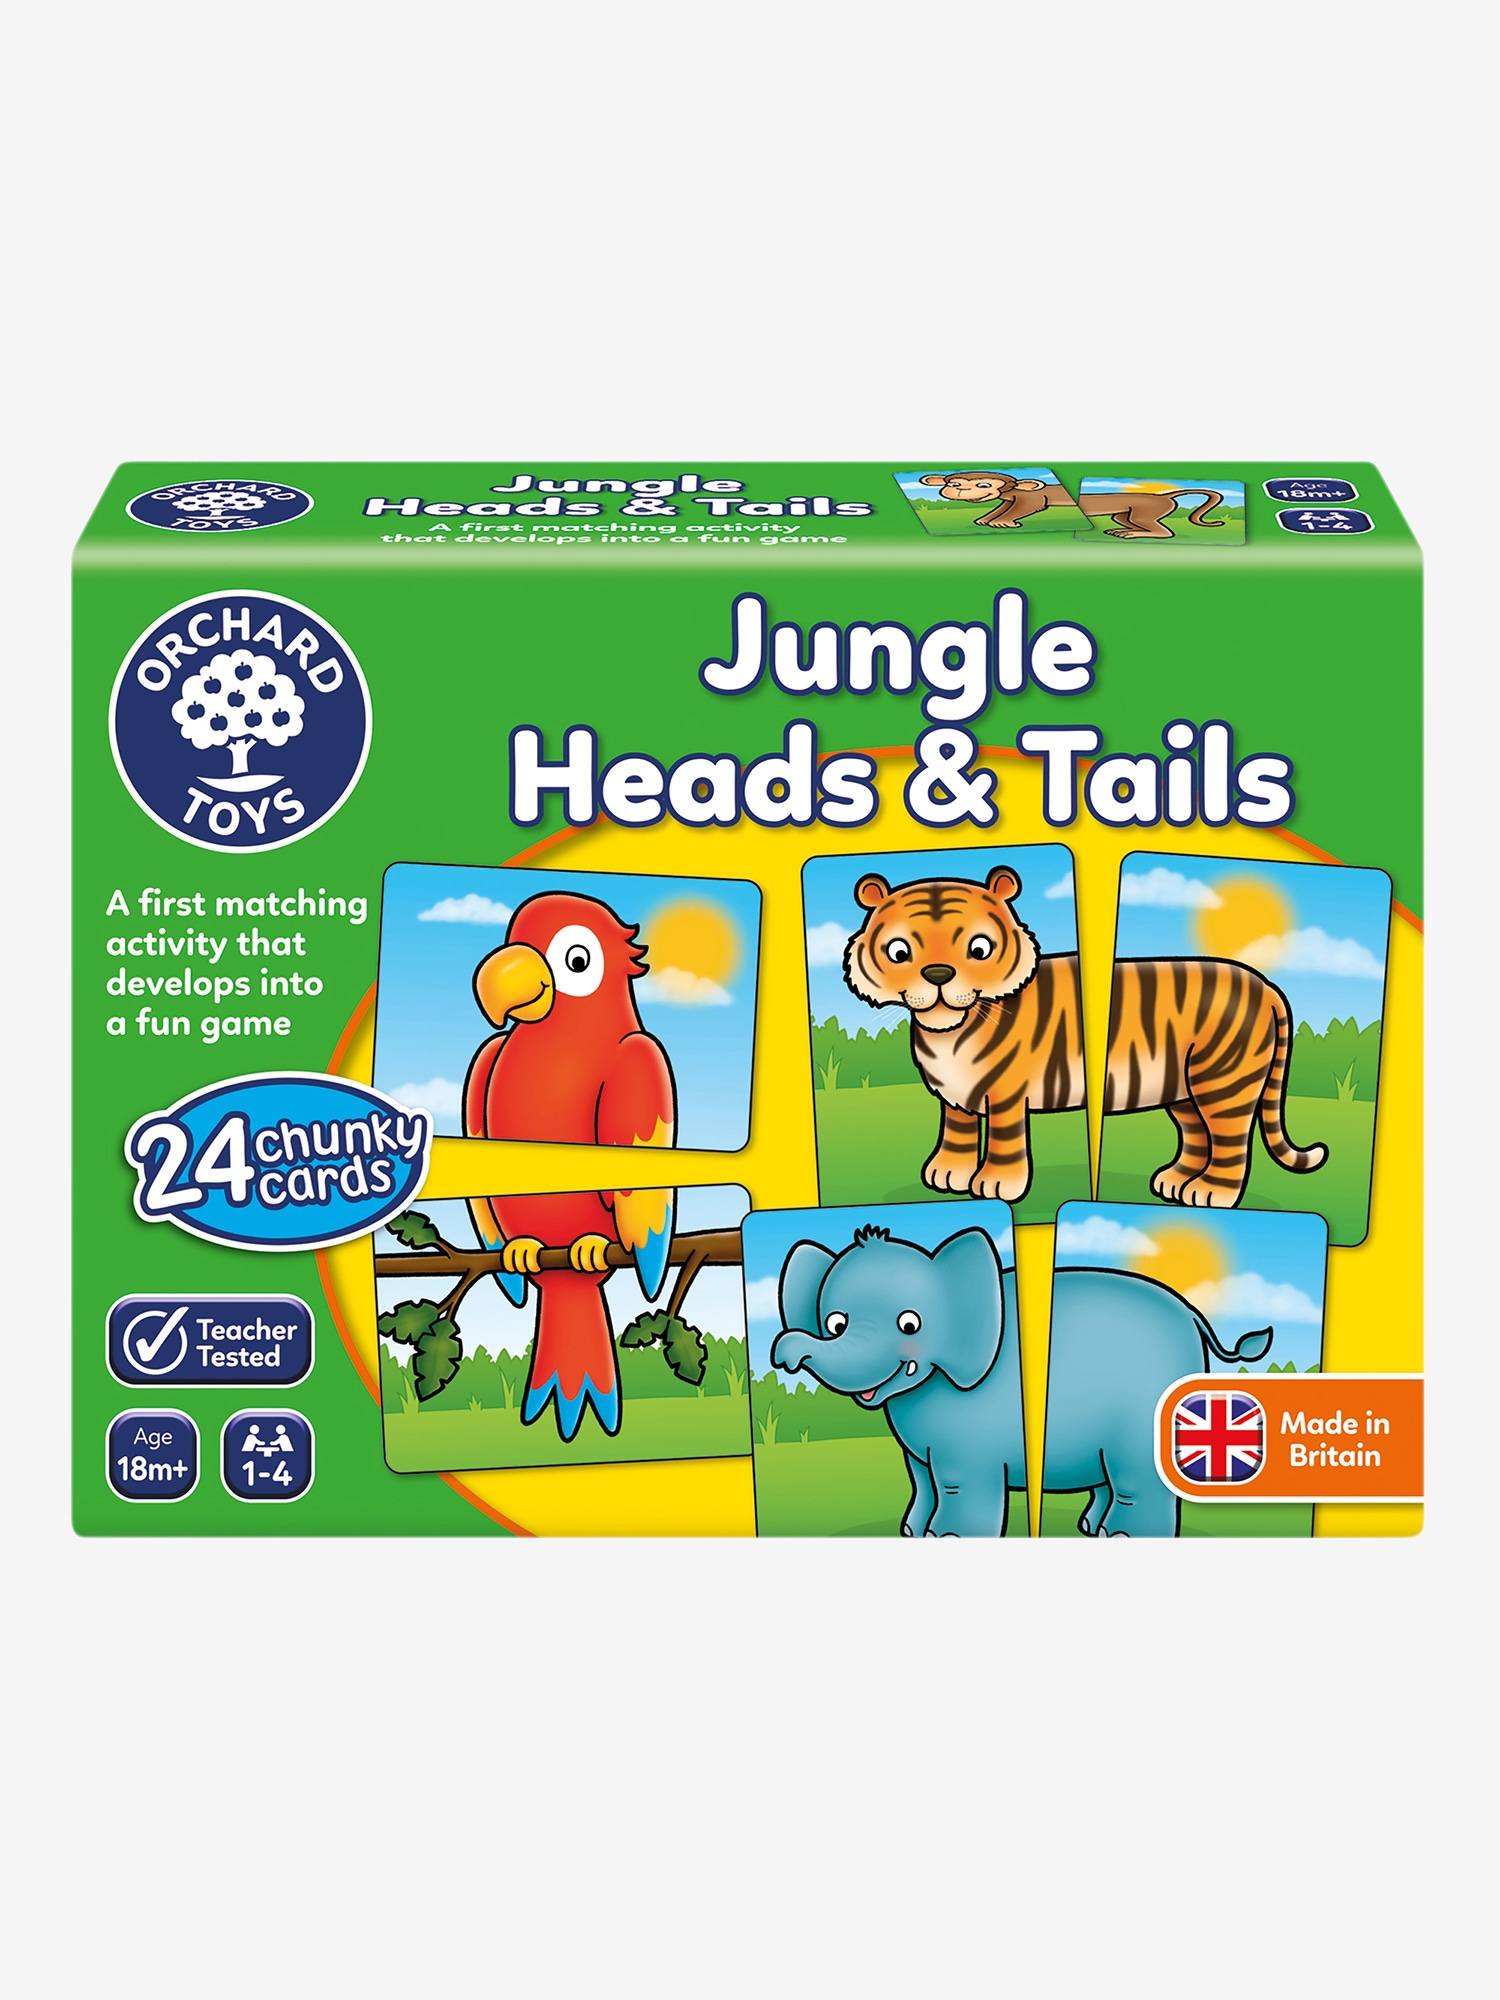 Orchard Toys Jungle Heads & Tails Game